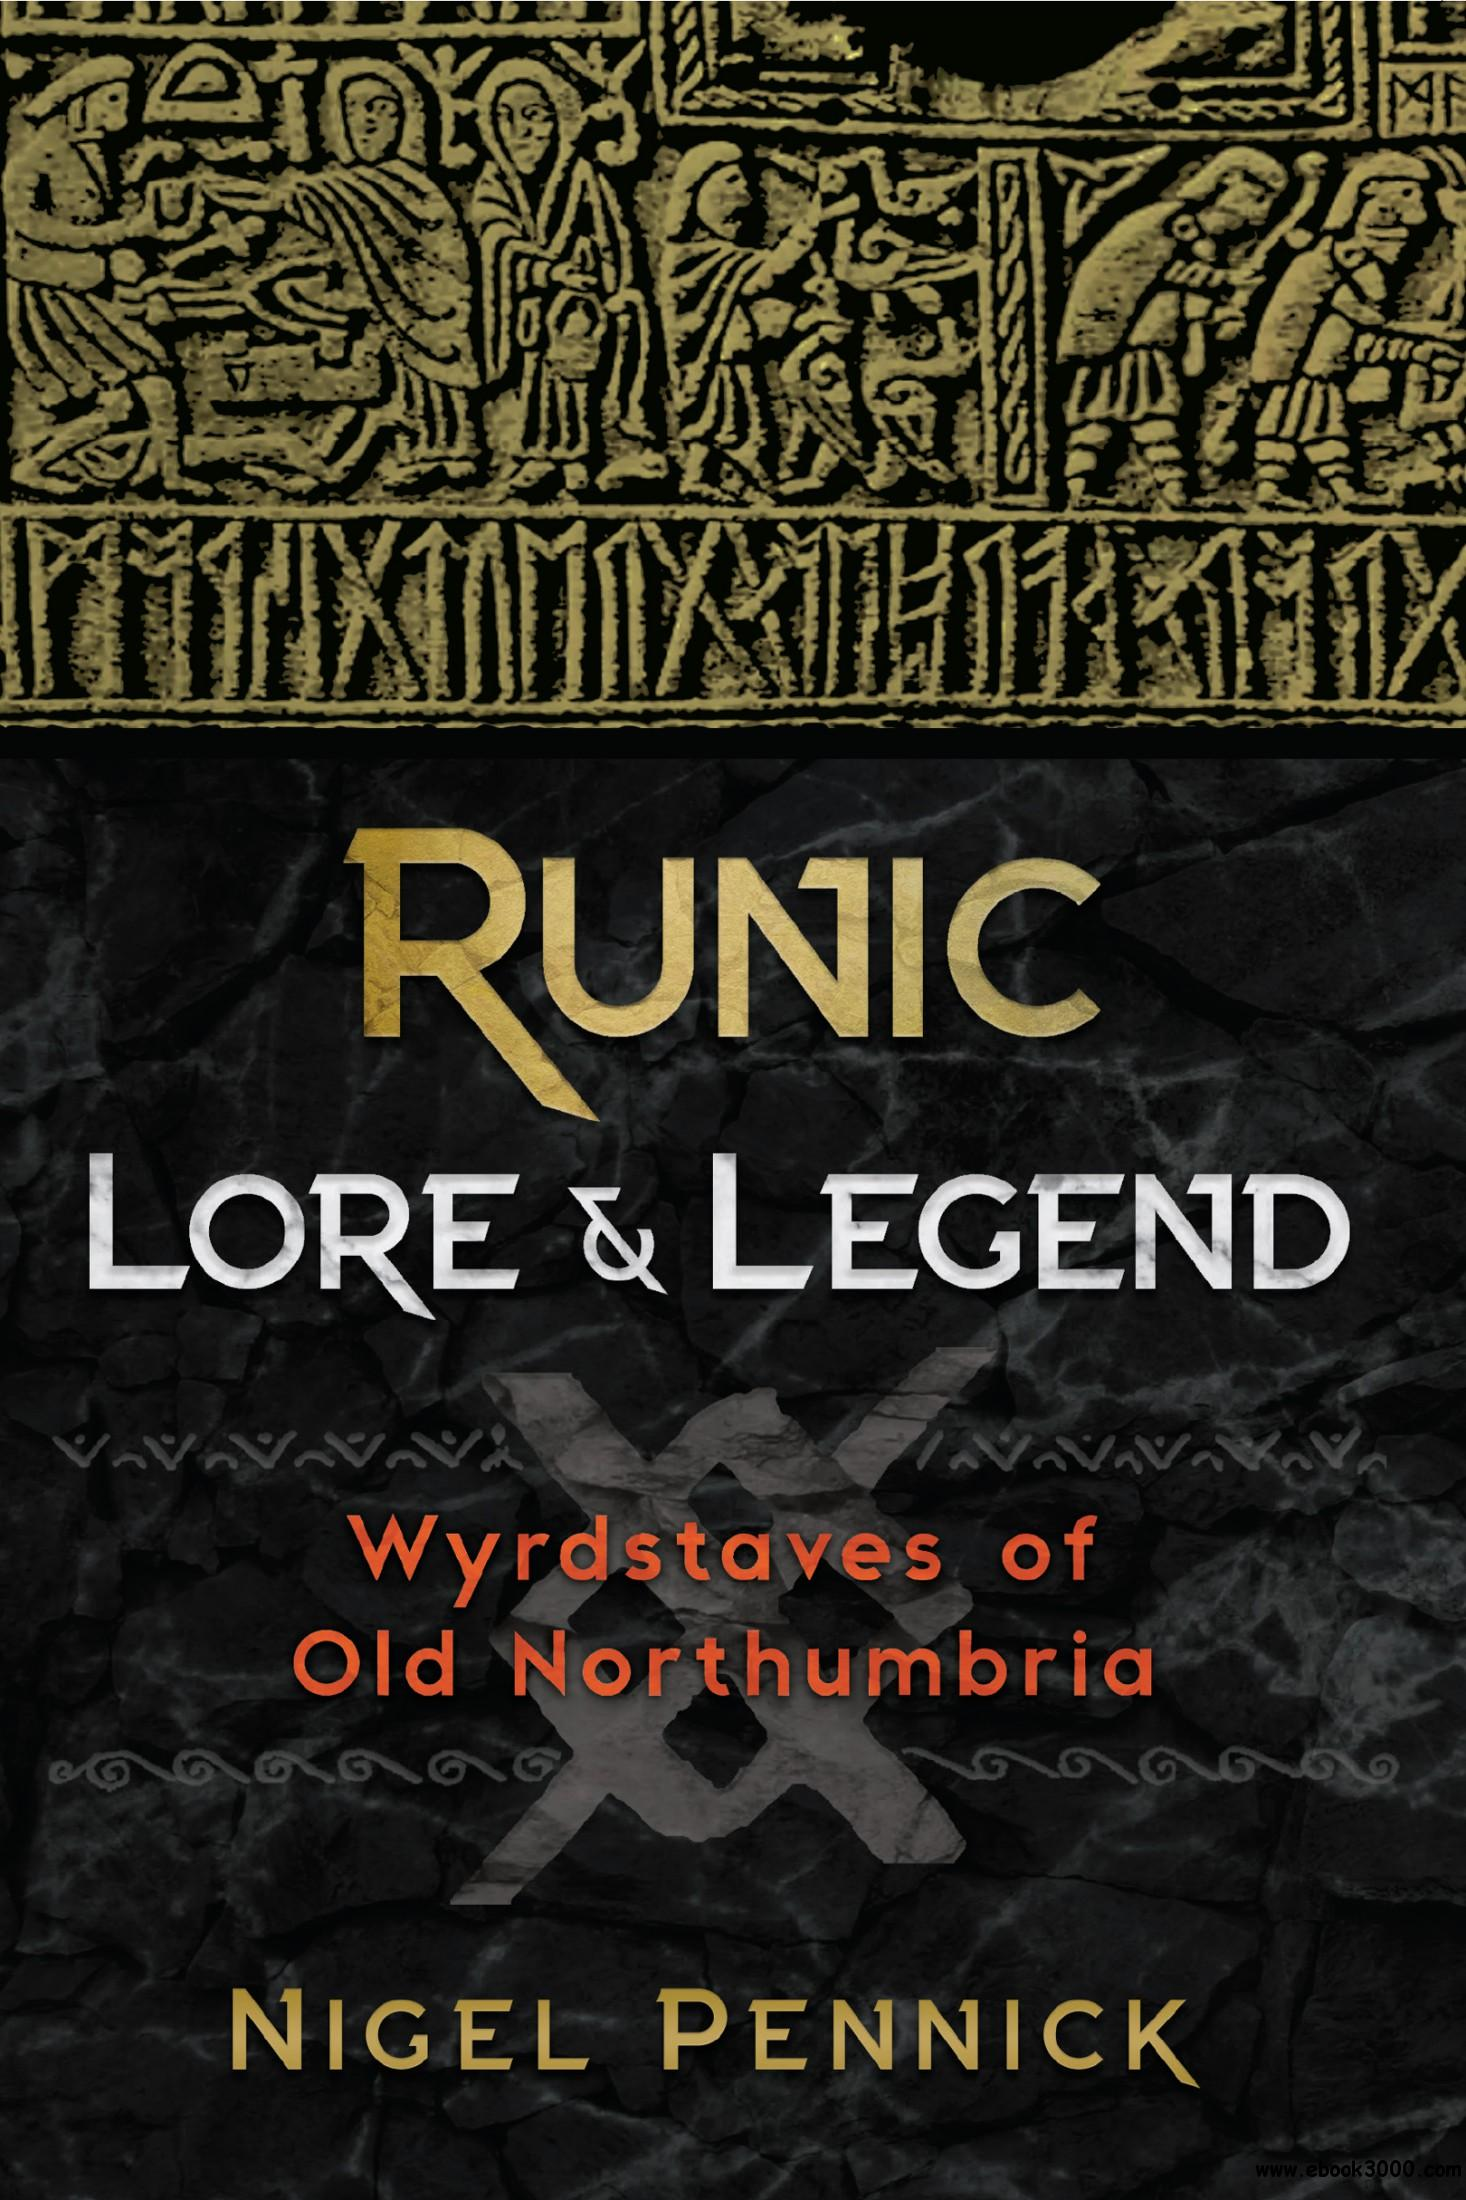 Runic Lore and Legend: Wyrdstaves of Old Northumbria, 2nd Edition